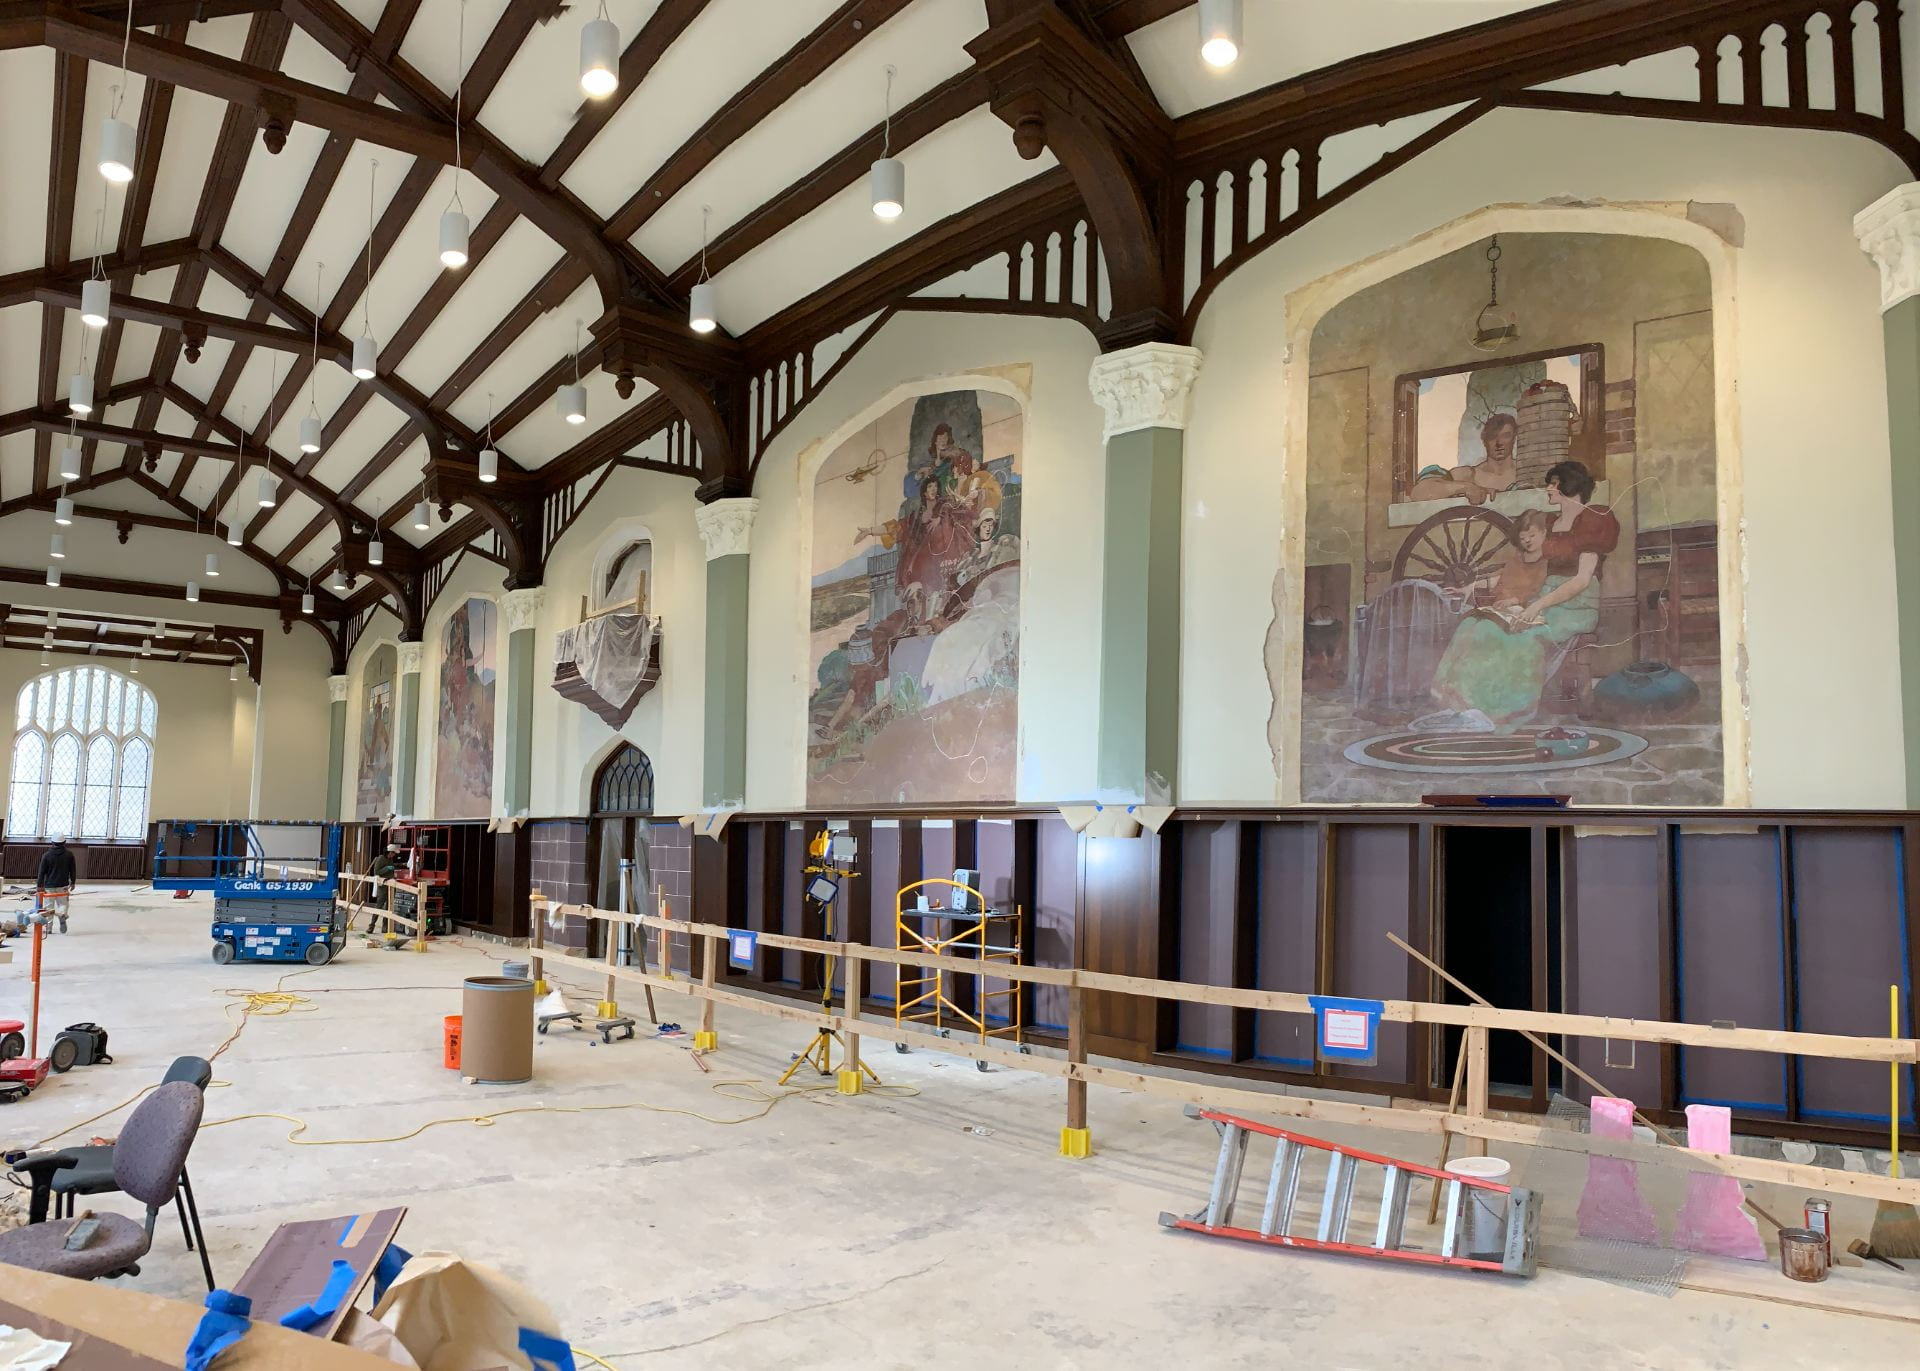 The murals in the Great Room gave been uncovered.